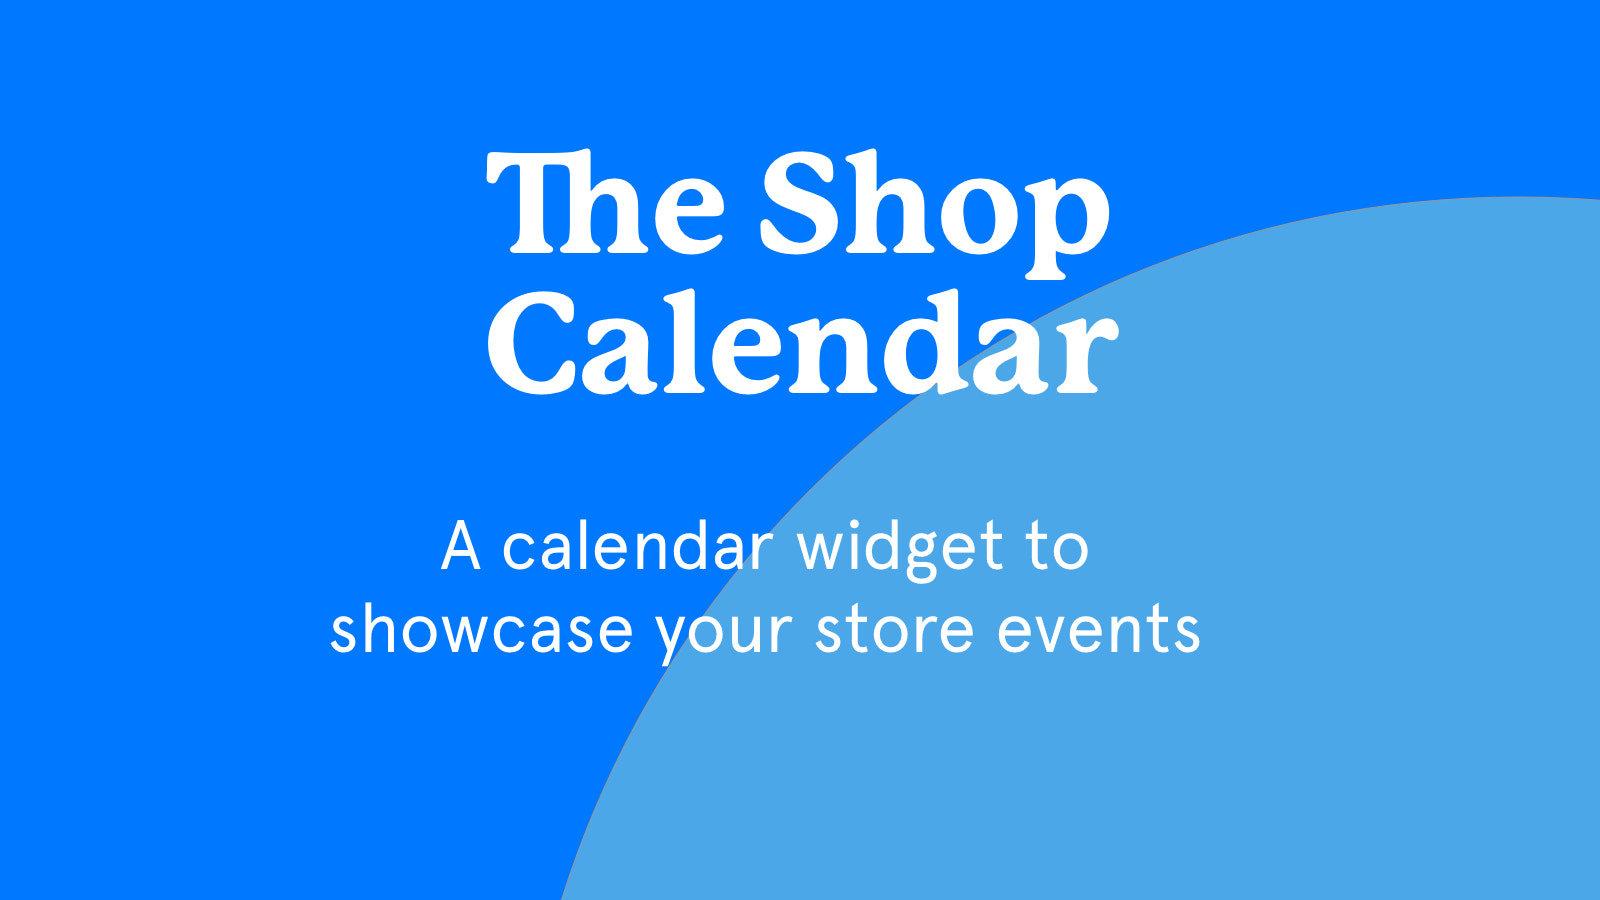 The best way to showcase your store events